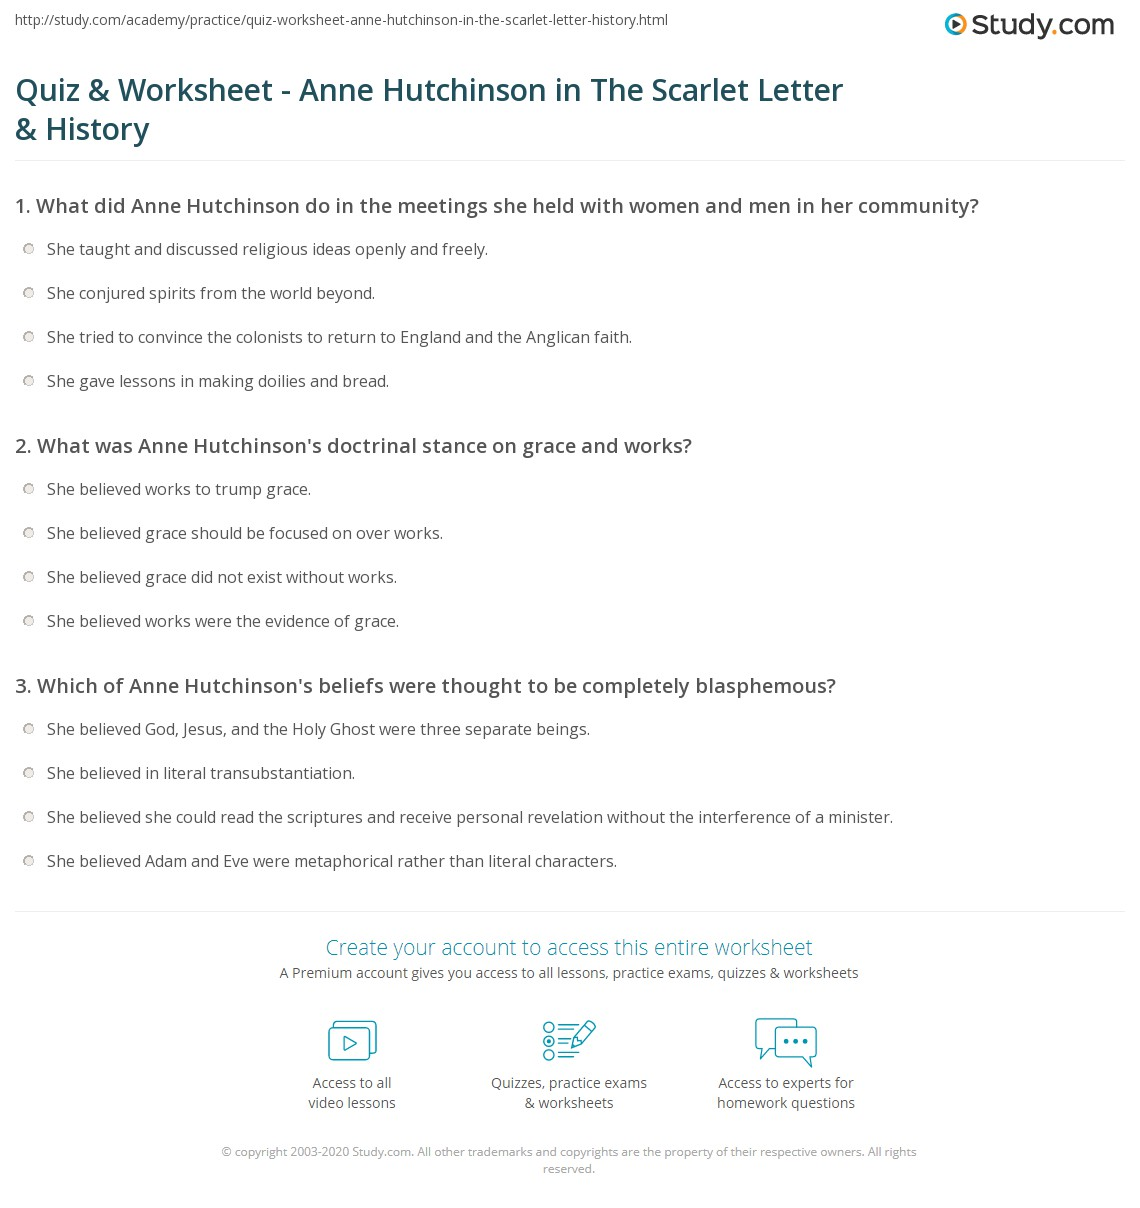 Quiz & Worksheet   Anne Hutchinson in The Scarlet Letter & History